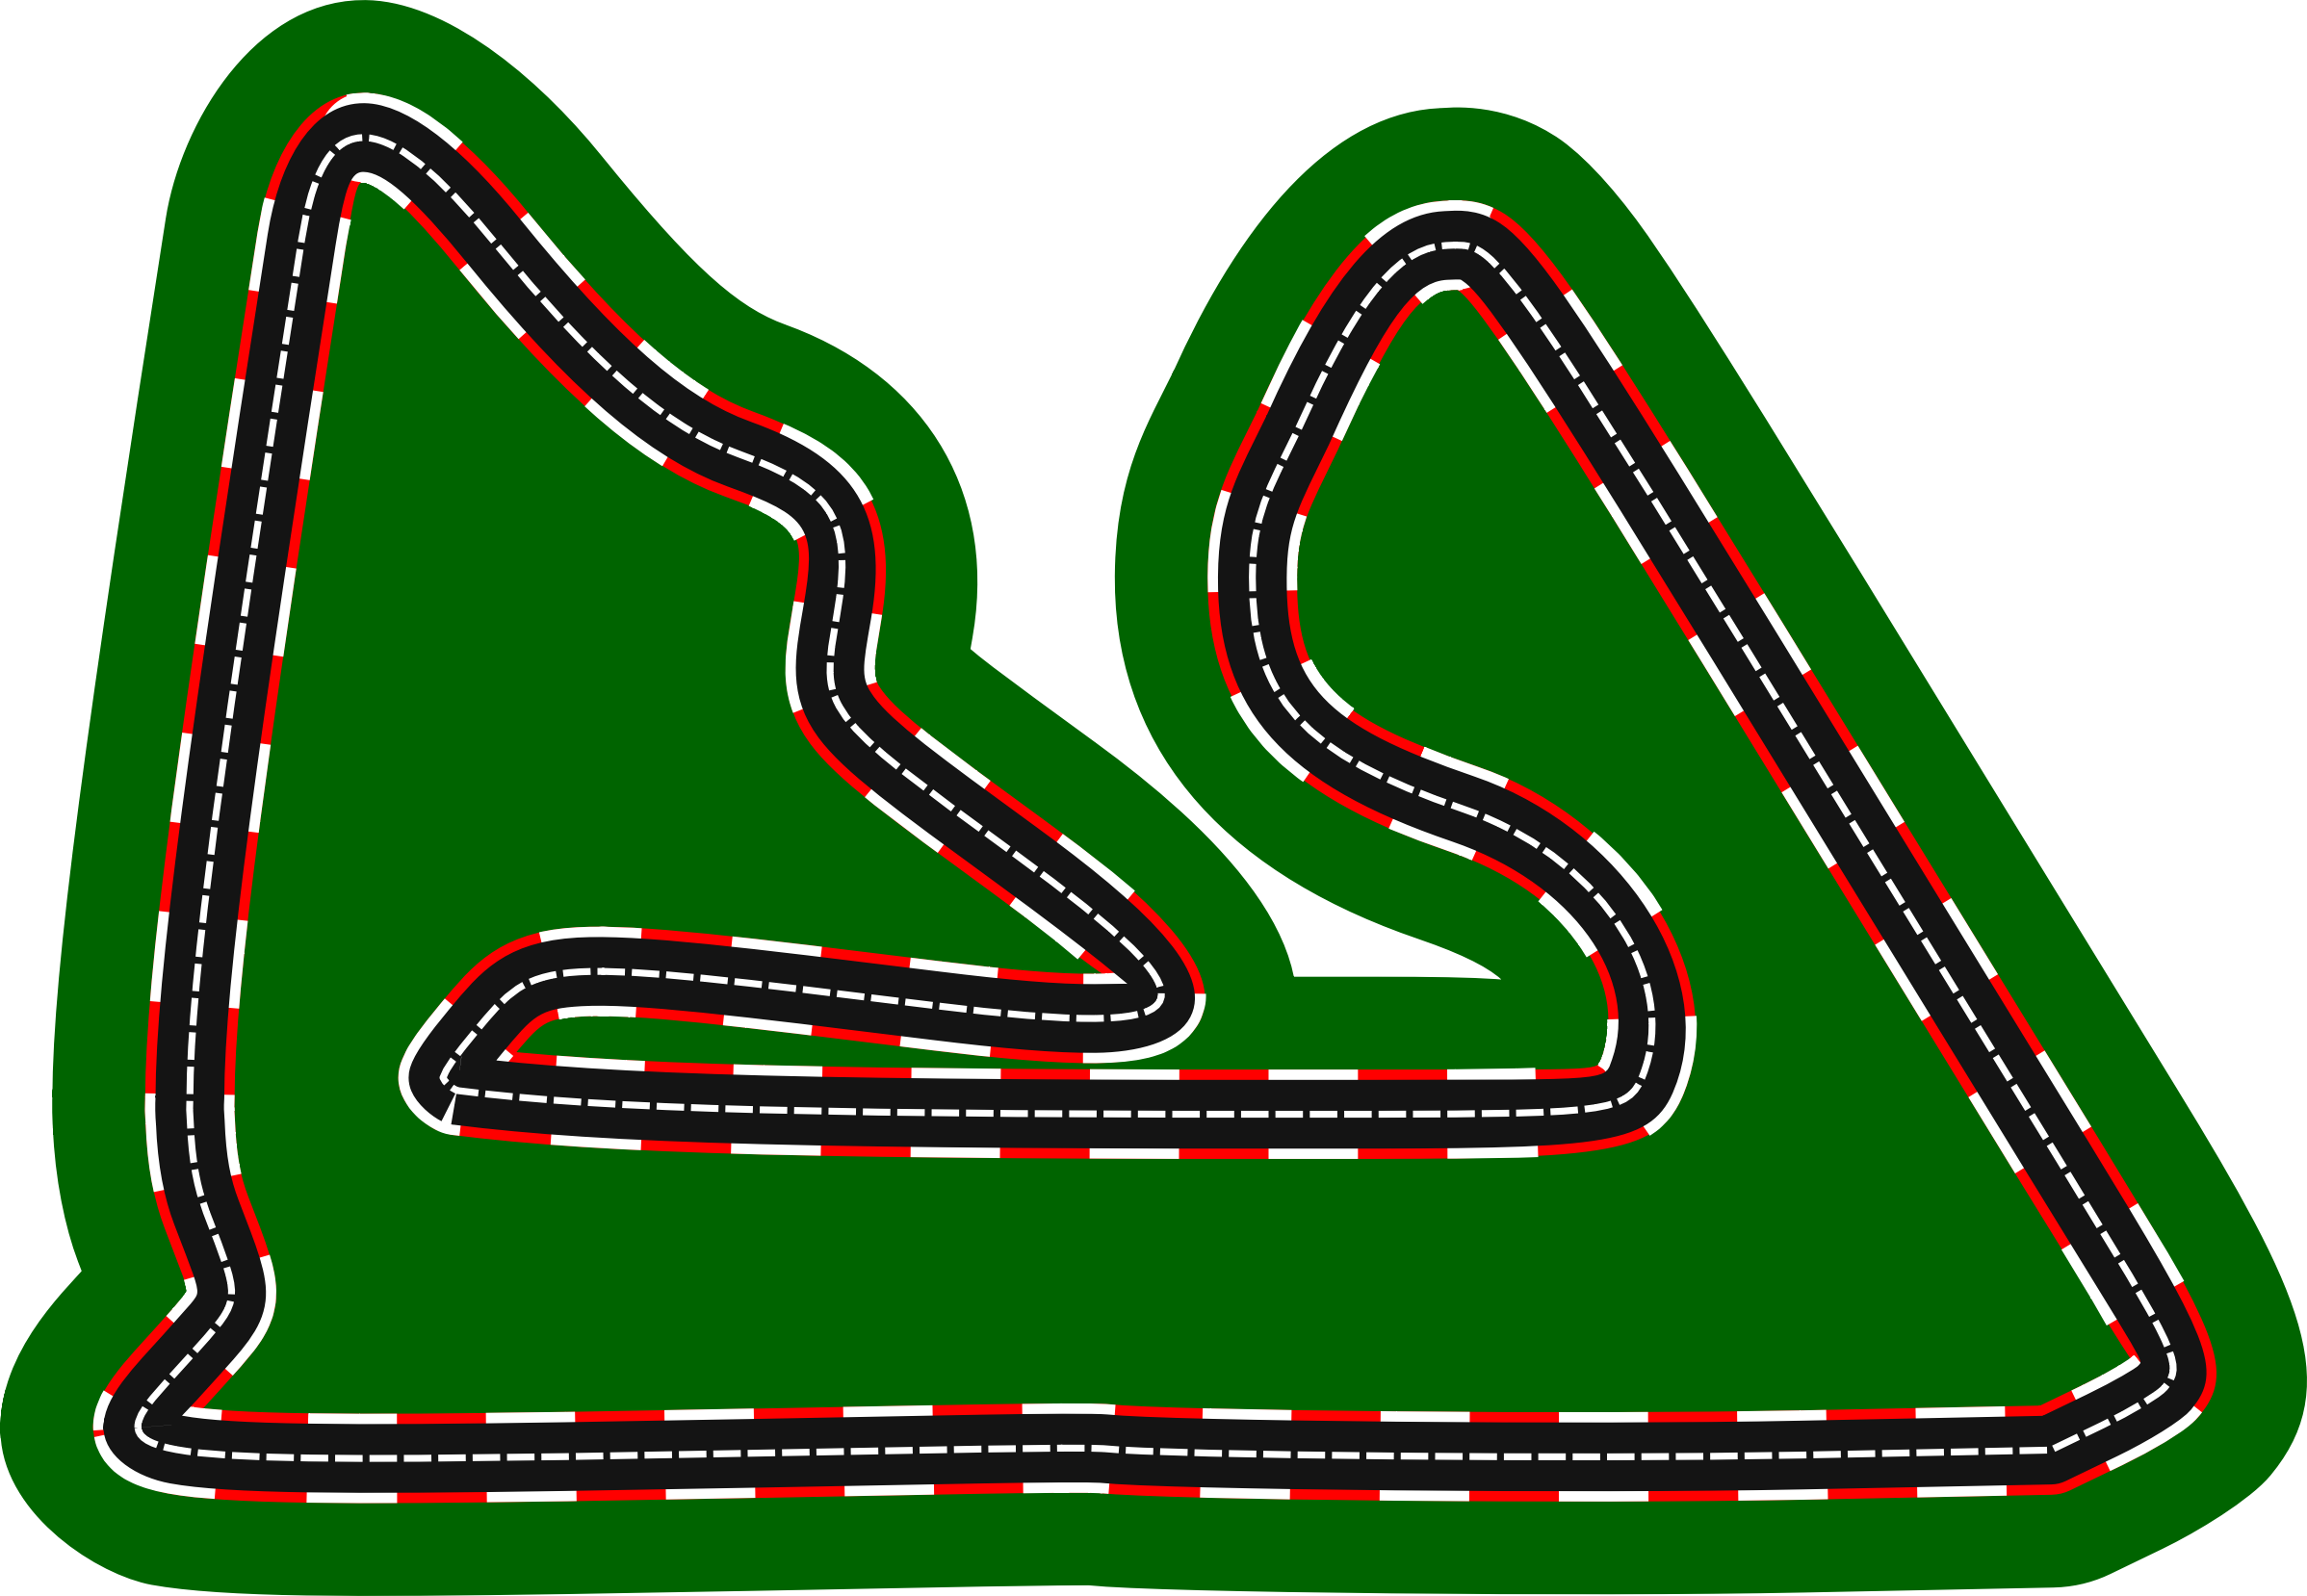 Remix of F1 circuits 2014-2018 - Bahrain International Circuit (version 2) by Firkin